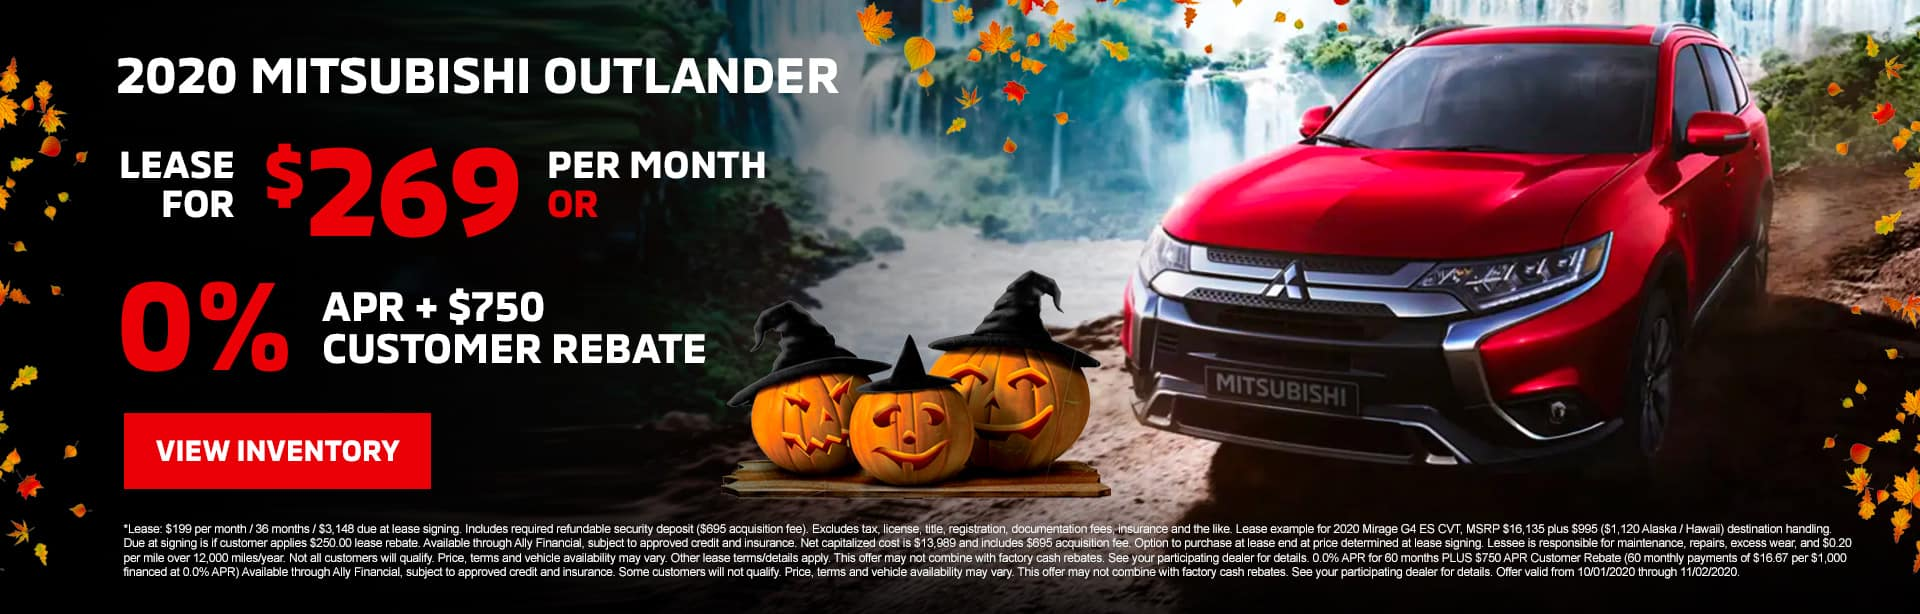 2020 Mitsubishi Outlander Lease for $269/mo with $2,543 due at signing OR 0% APR + $750 Customer Rebate